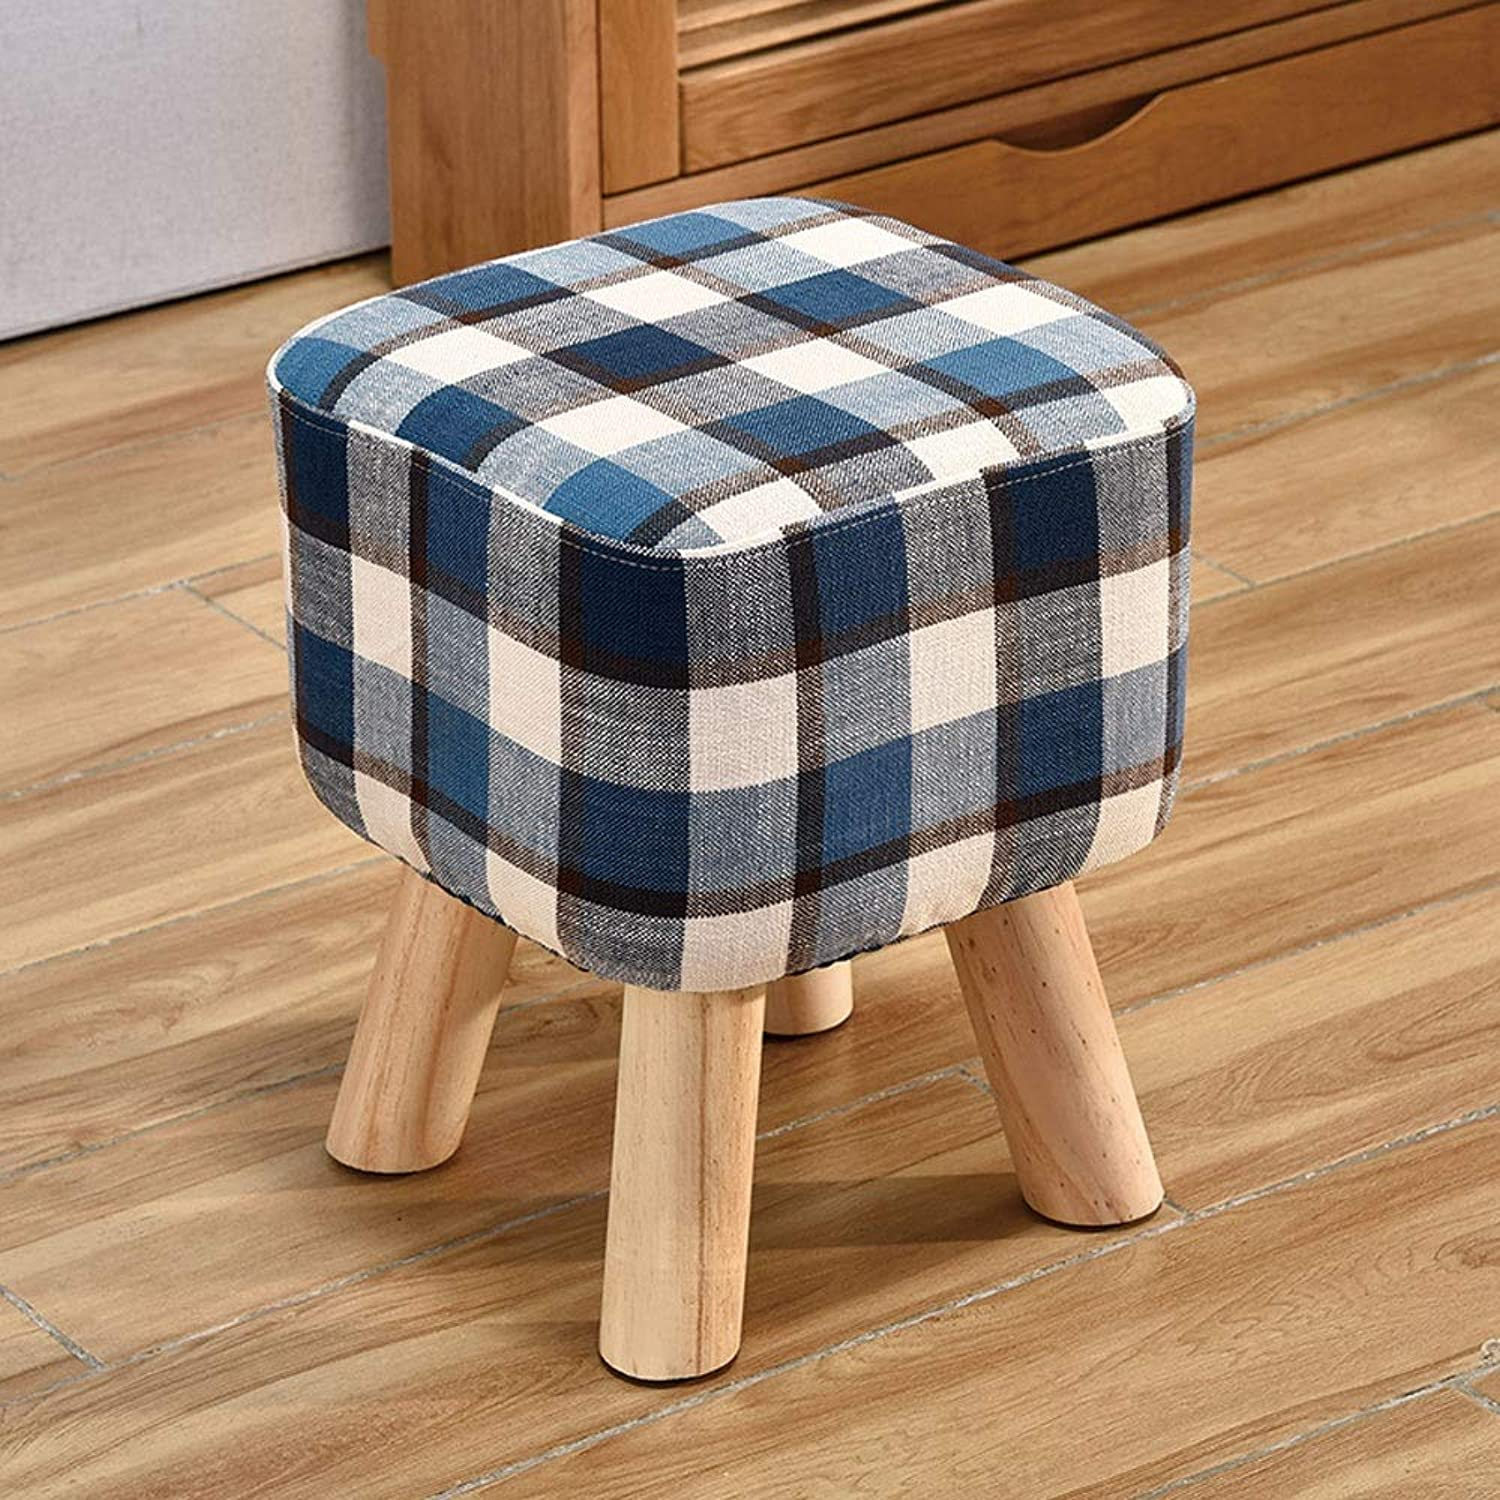 Solid Wood Heightening Stool Creative Living Room Change shoes Stool Fashion Fabric Sofa Bench Bench (color   bluee)